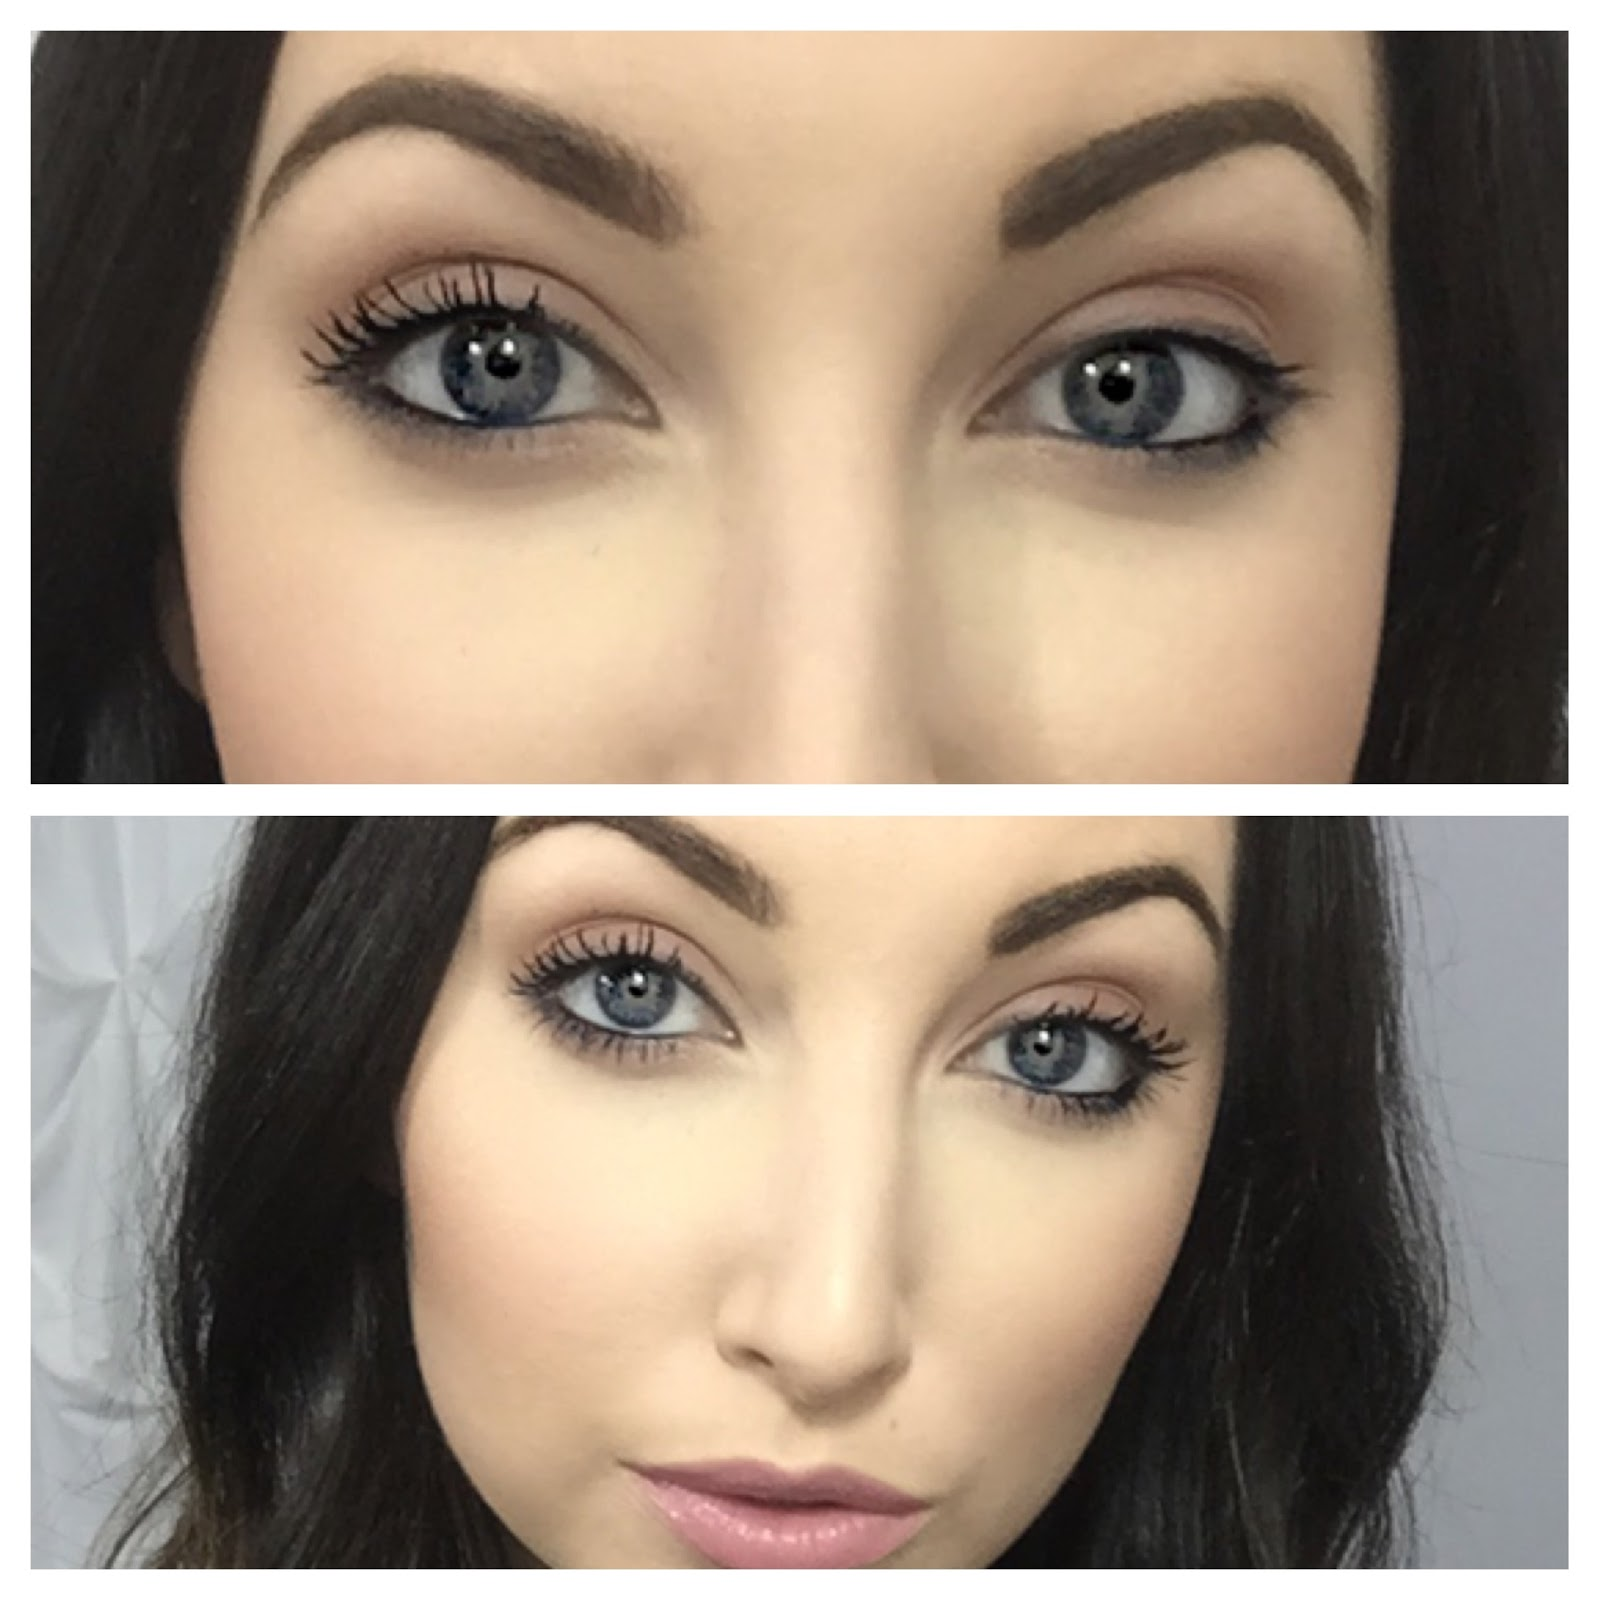 55668e5fa72 I hate wearing false lashes with a bare face because it looks way too  extreme, where as with the Fiber Lashes Plus I'm getting a very soft natural  look with ...